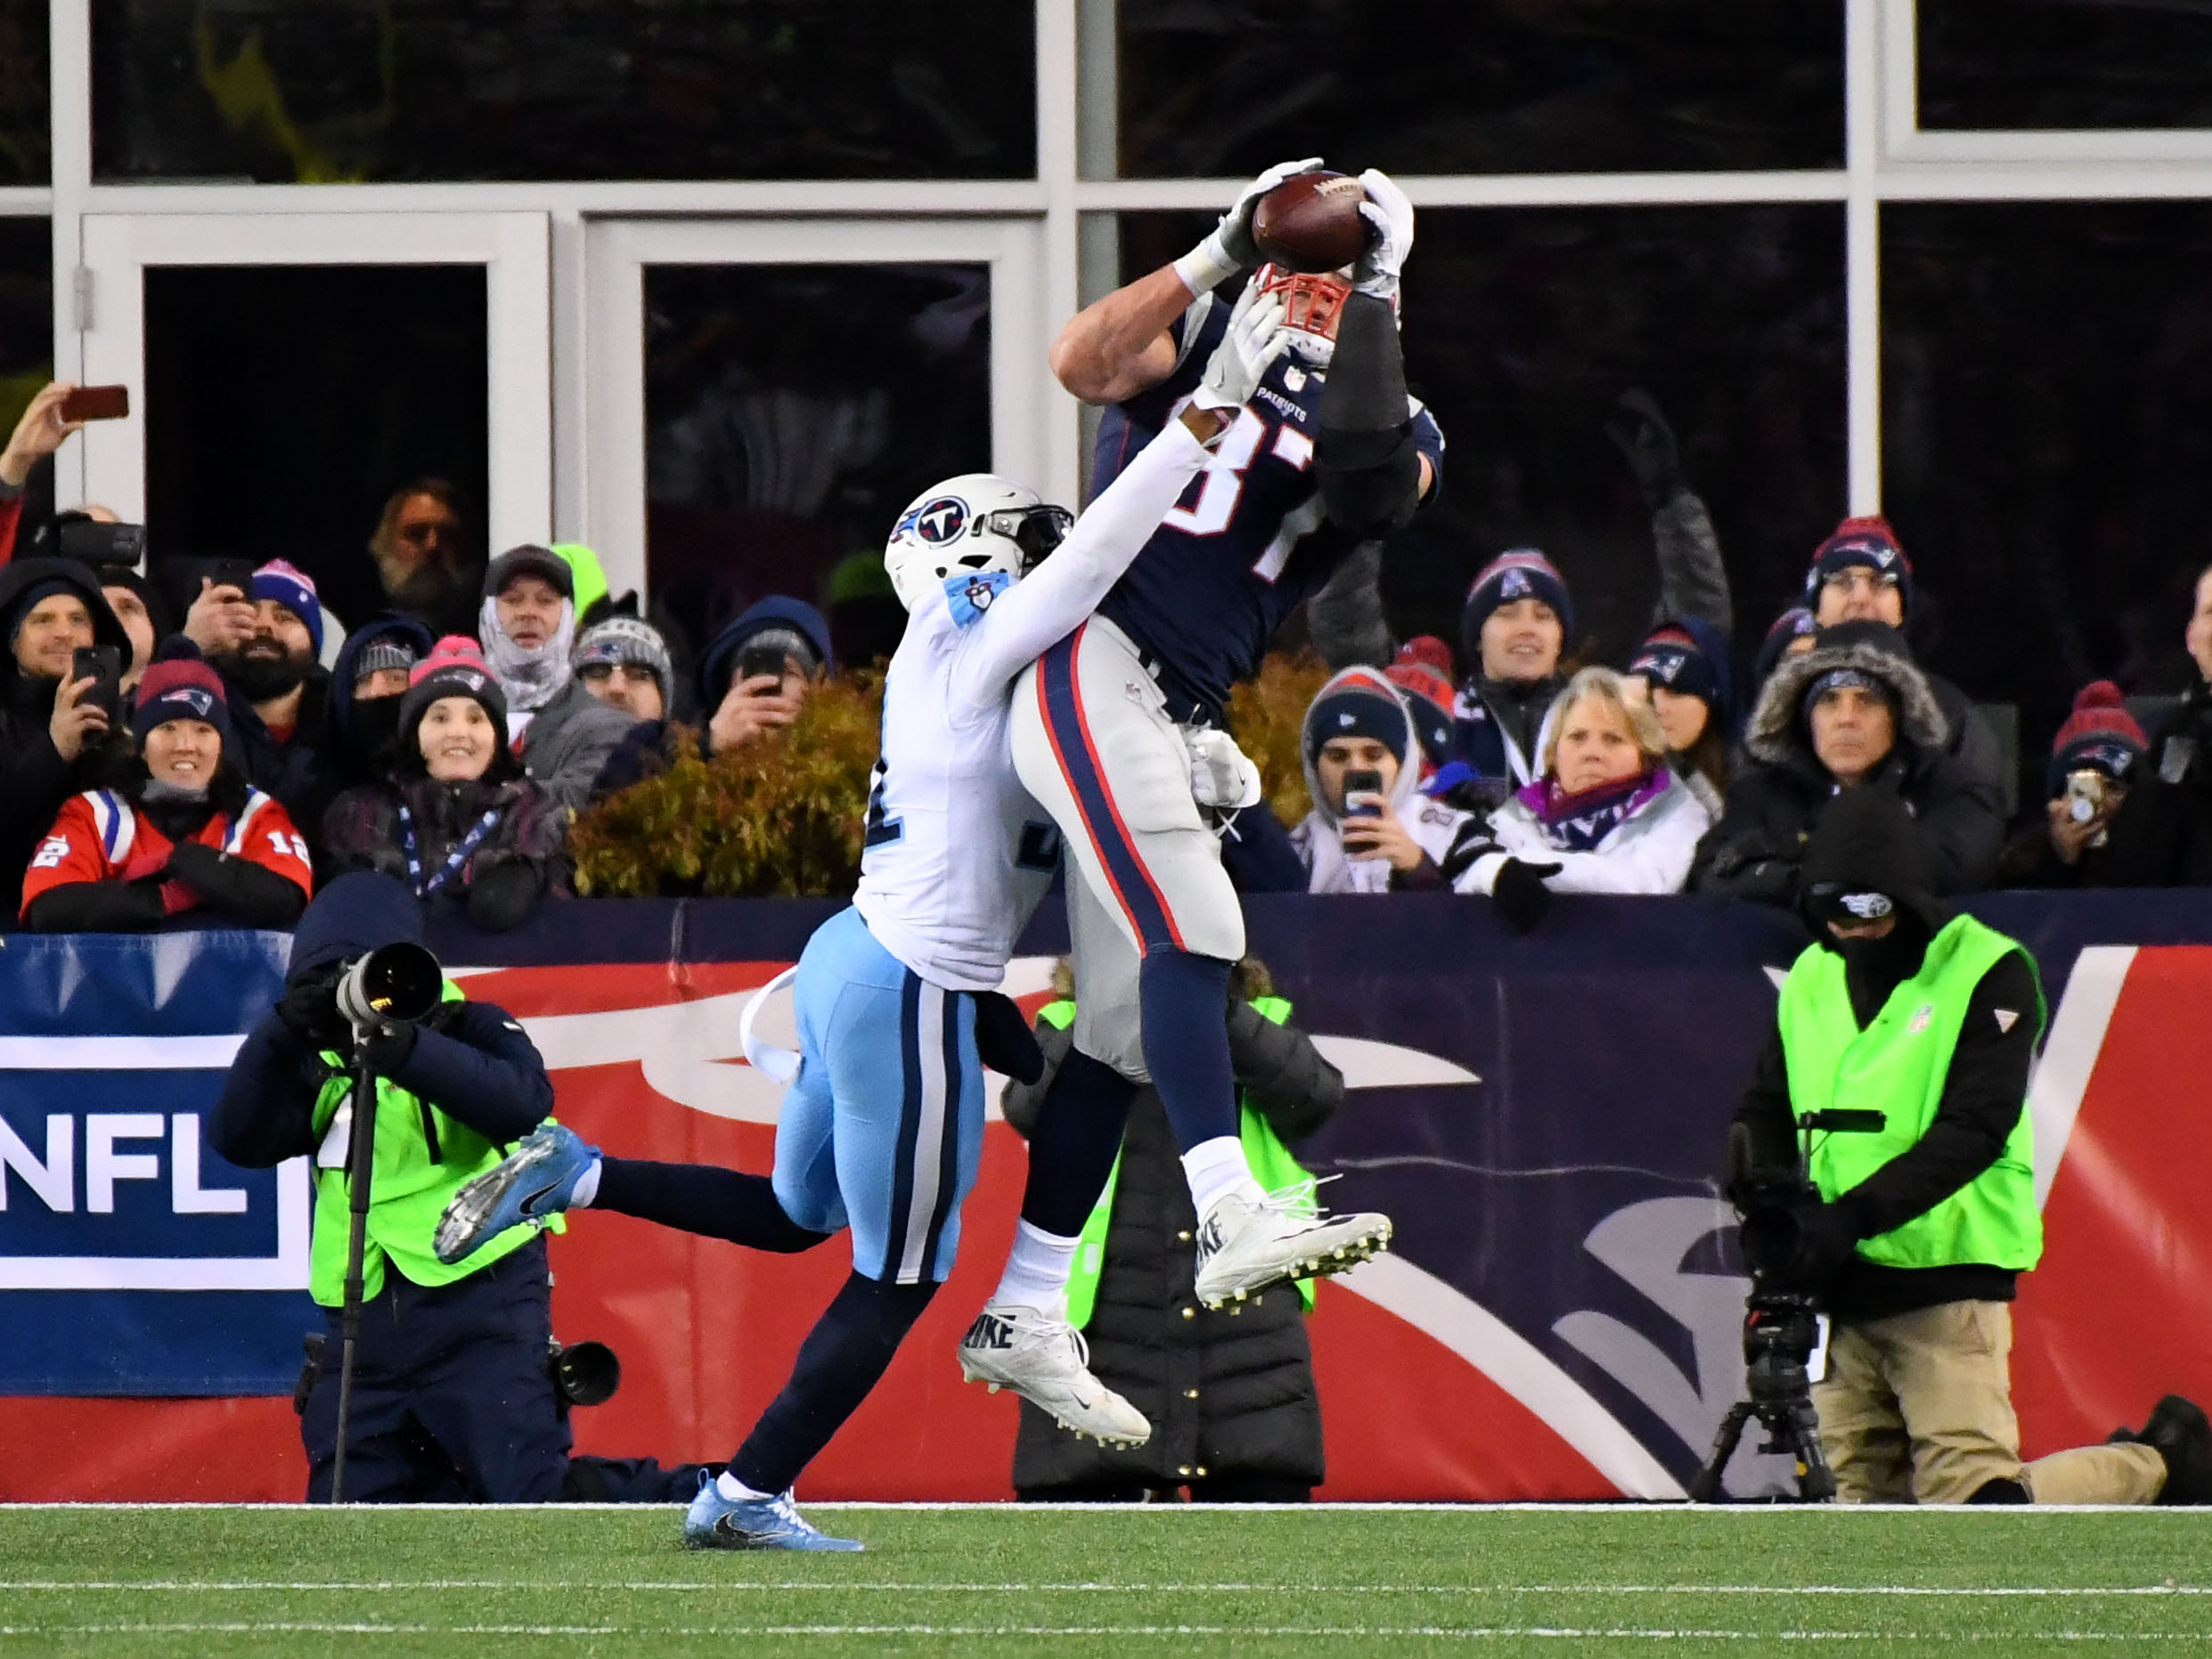 Rob Gronkowski victim of cheap shot by Jaguars? NFL reaction